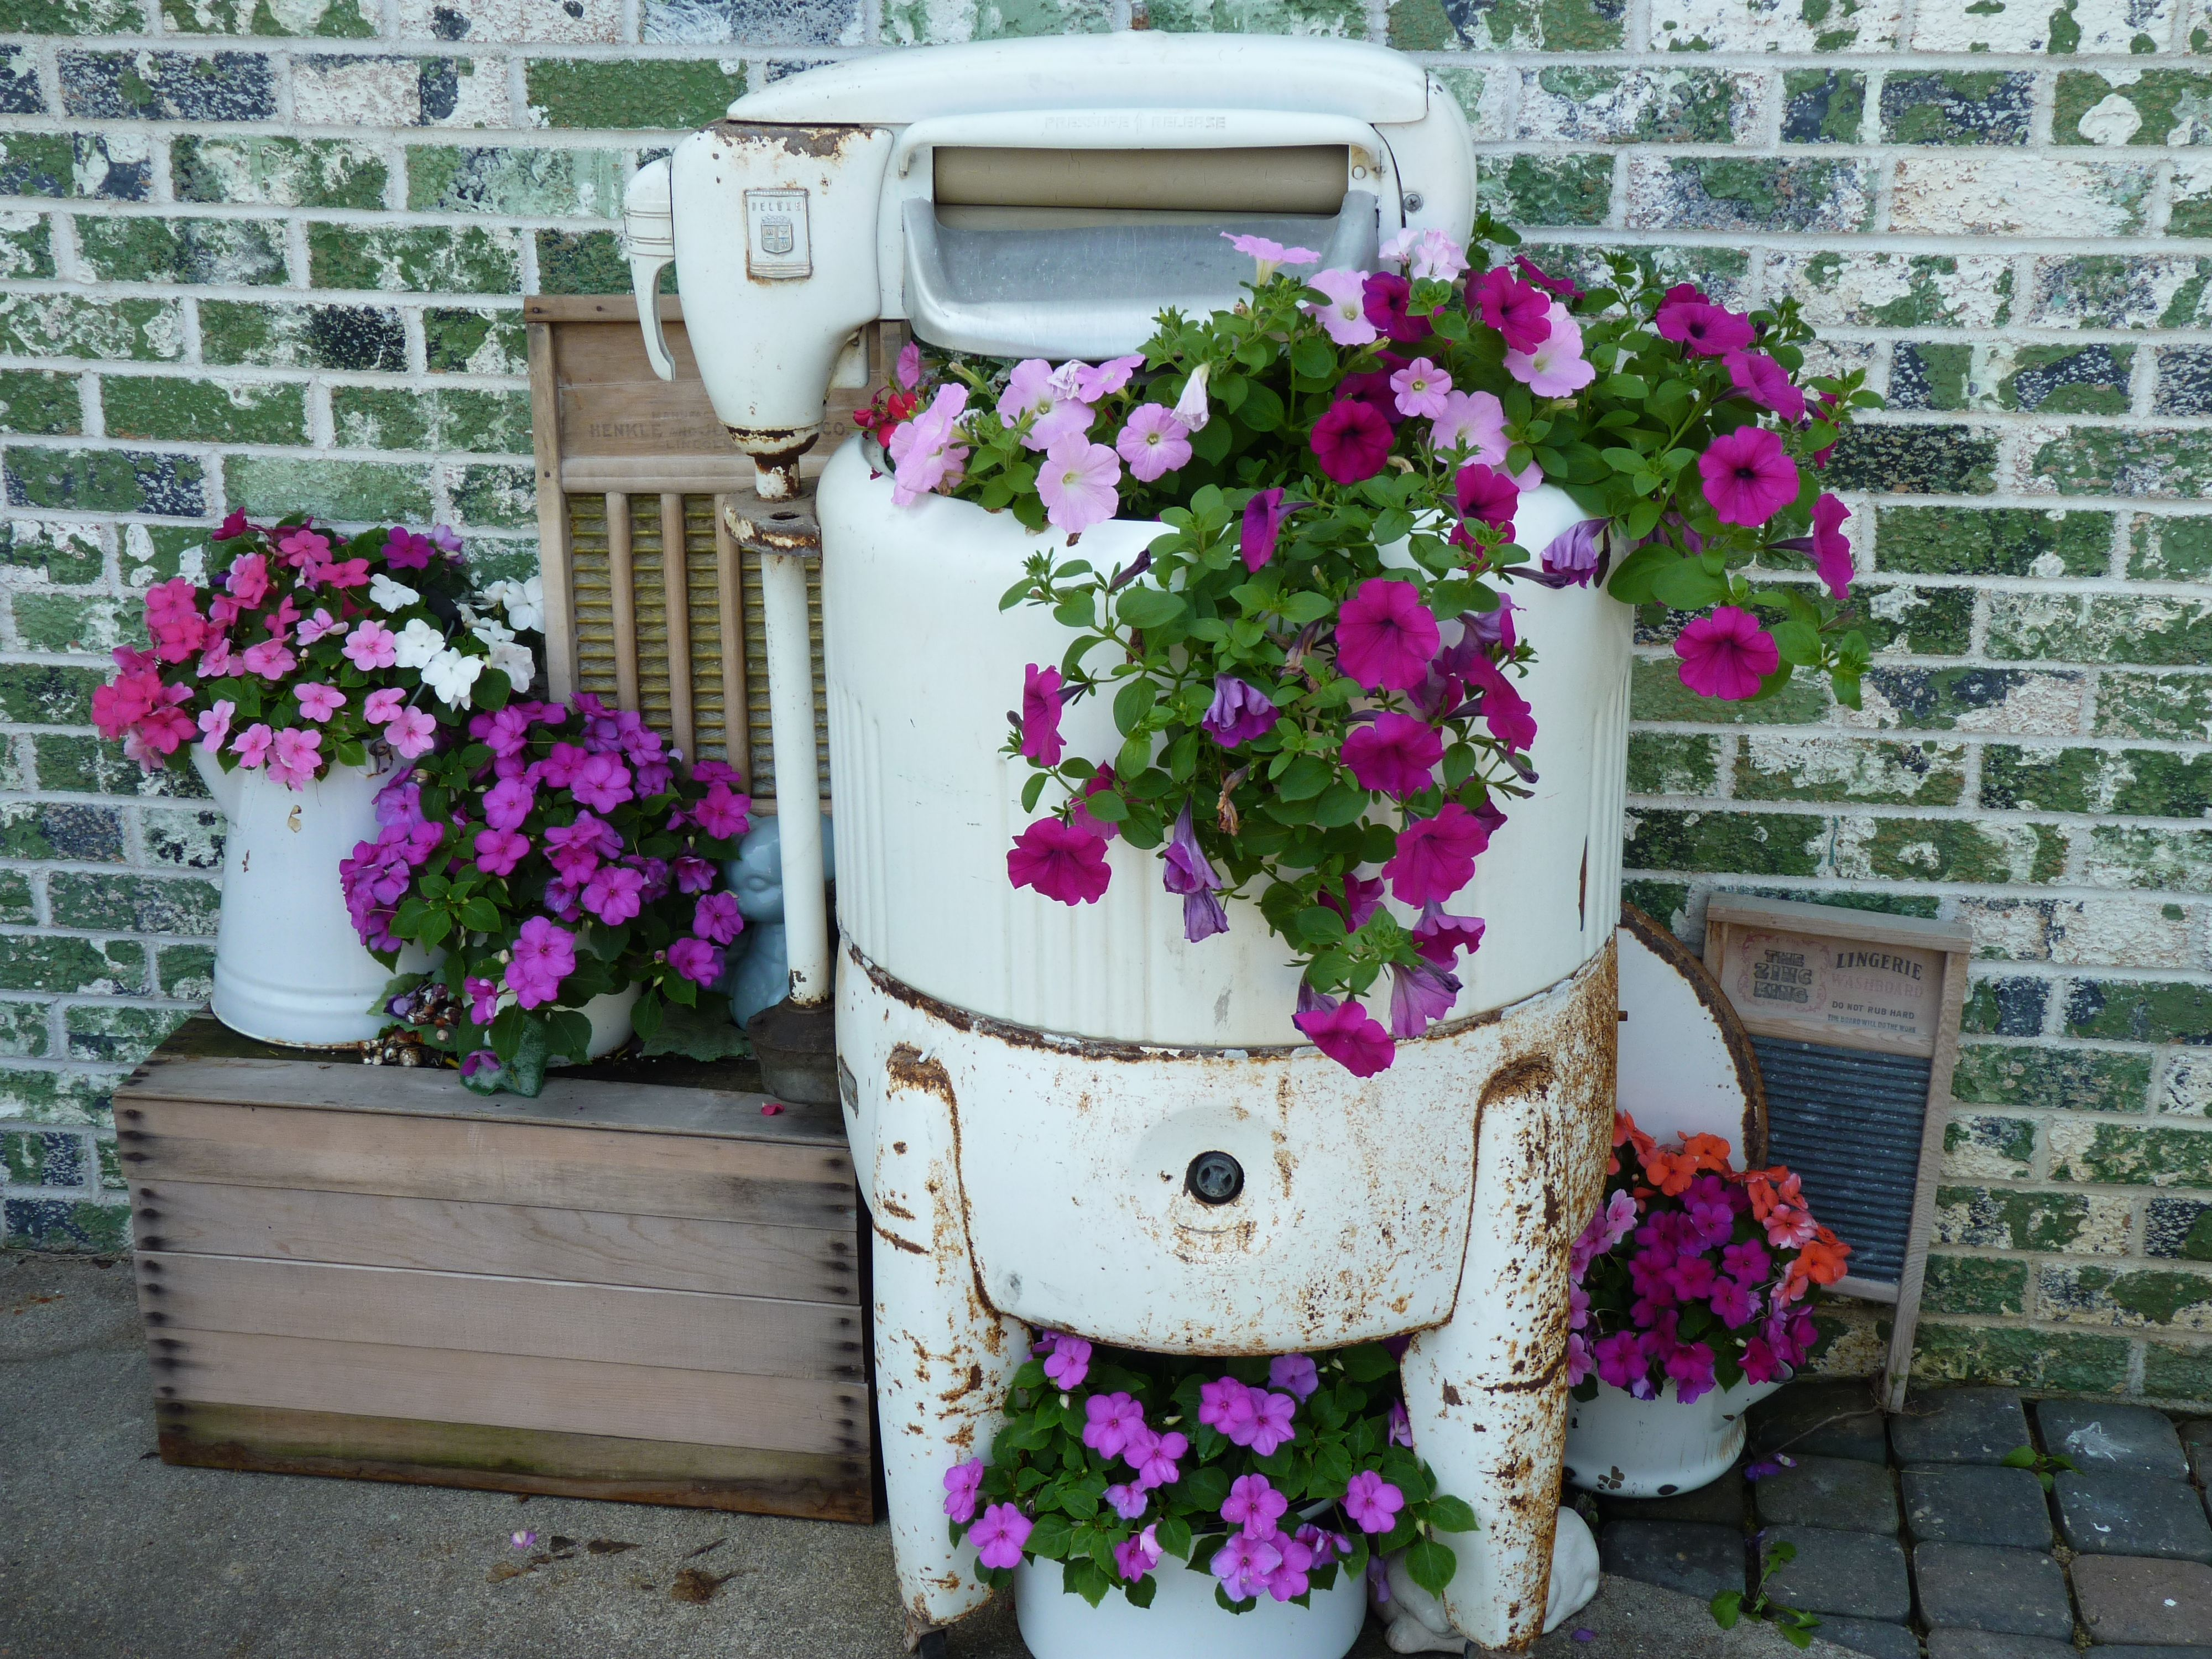 An Old Washing Machine That I Use For A Flower Pot Vintage Washing Machine Planter Vintage Washing Machine Old Washing Machine